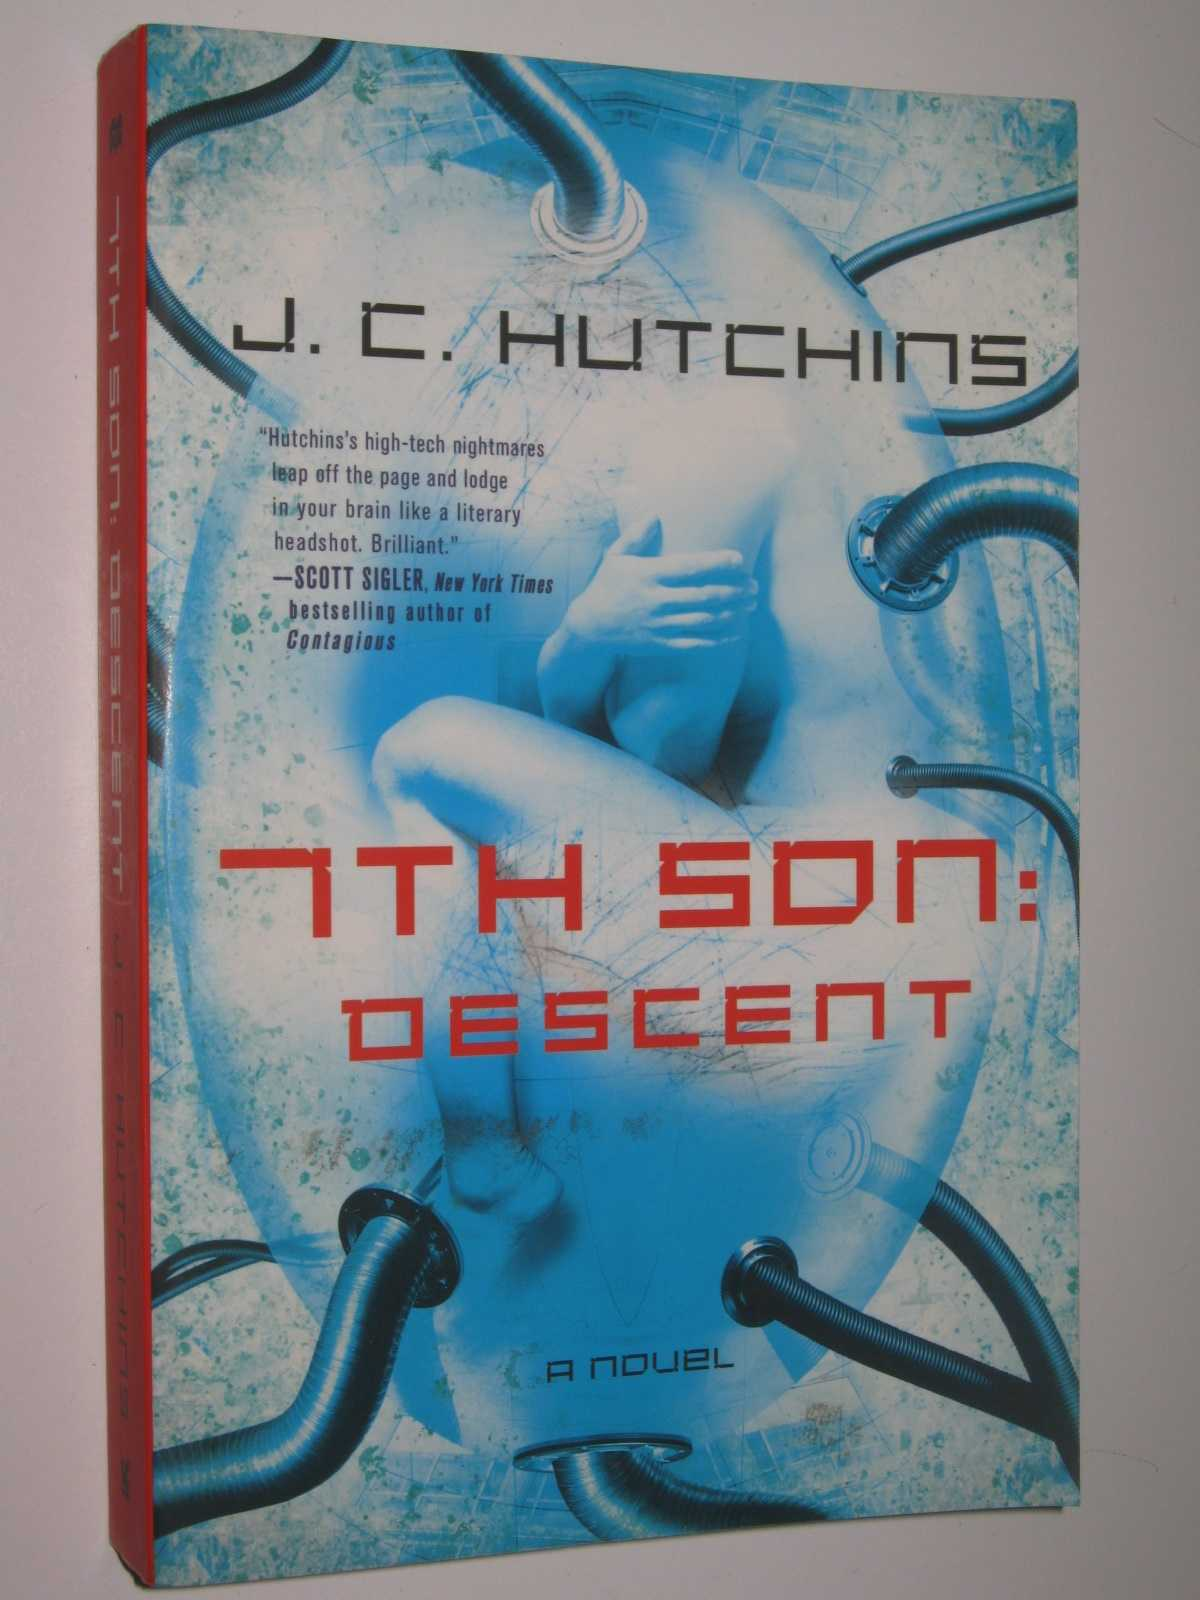 7th Son: Descent, Hutchins, J. C.